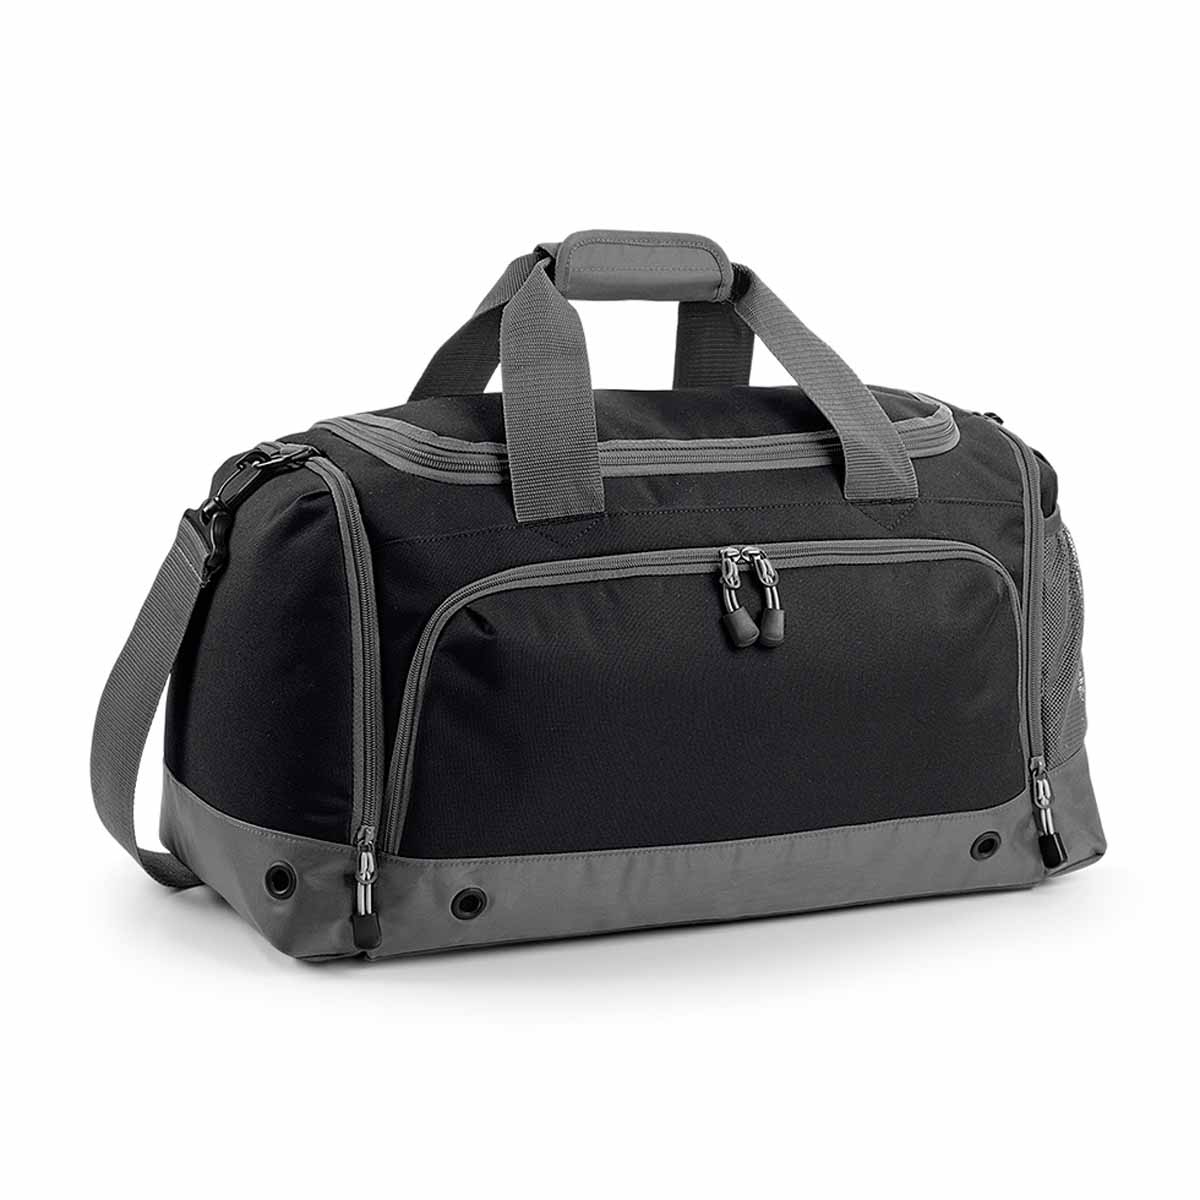 Sac de sport multi-sports - 30 L - BG544 - noir